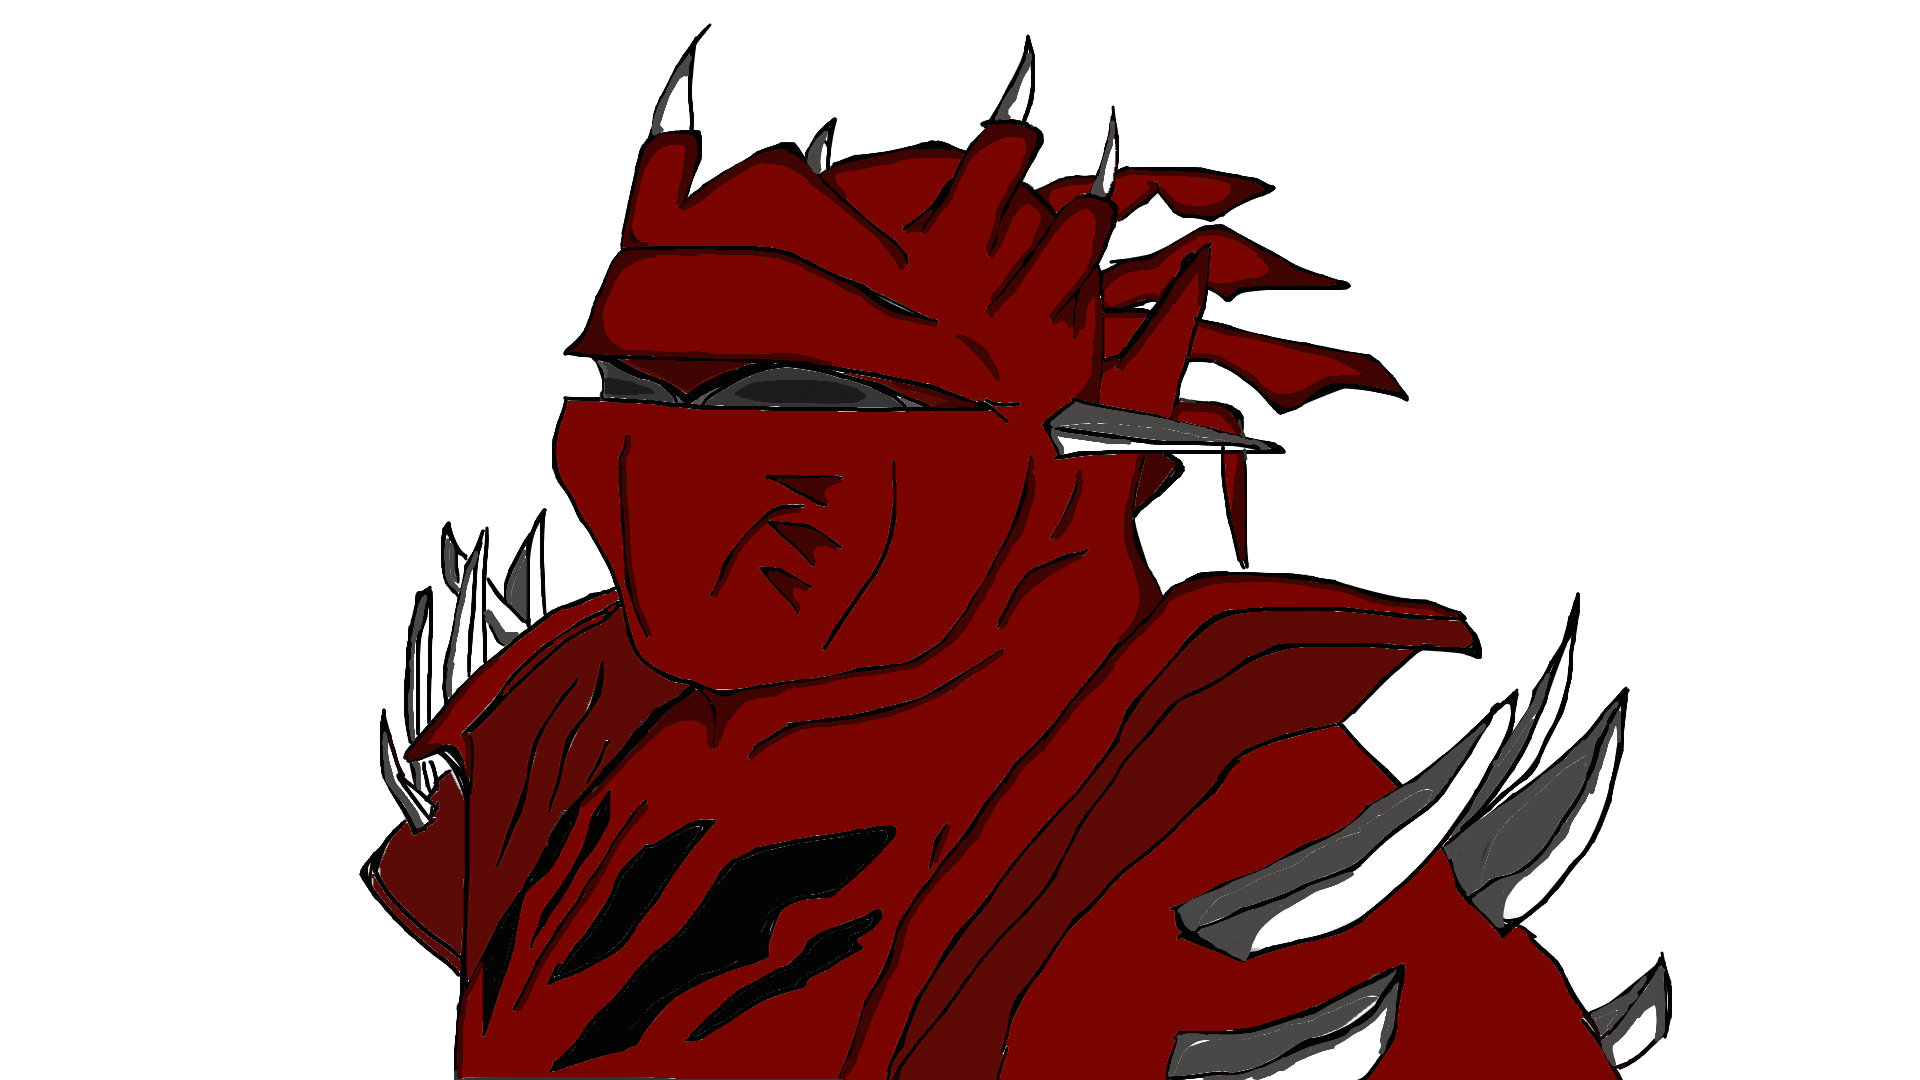 runescape dragon armour finish 1920x1080 by bob1268205 on